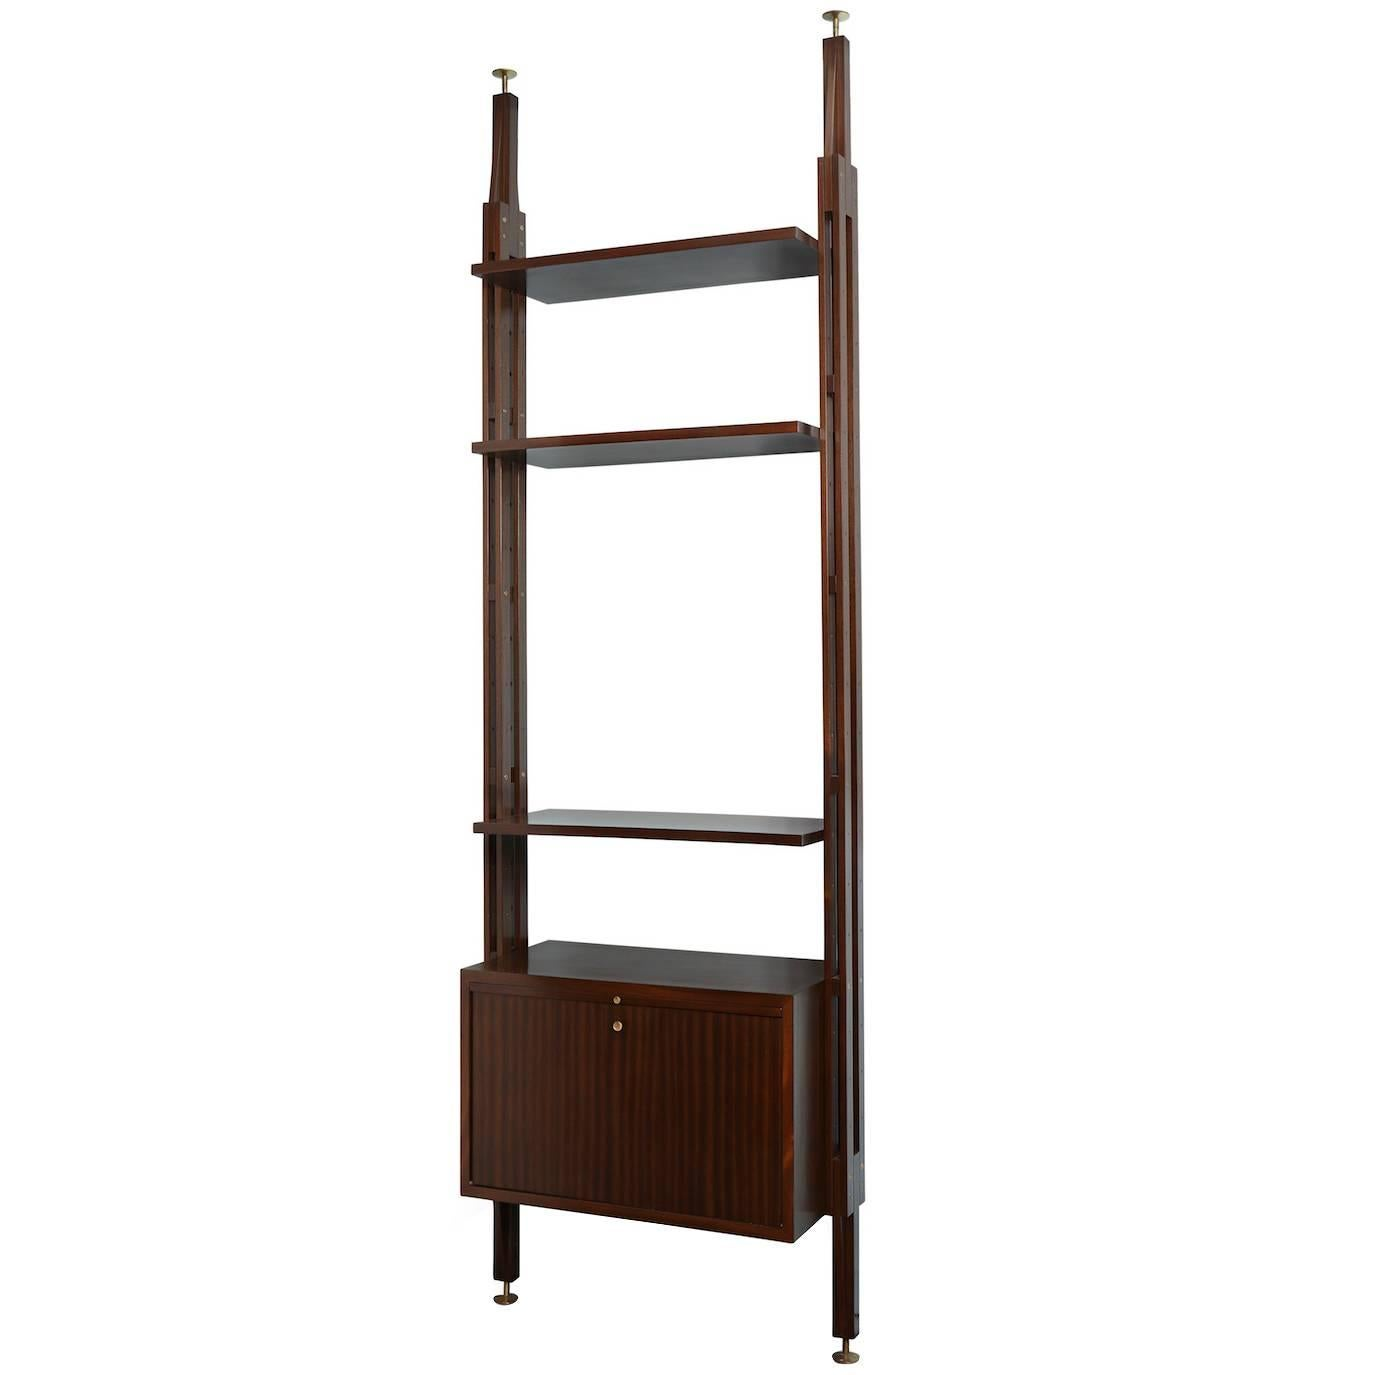 Franco Albini Bookcase